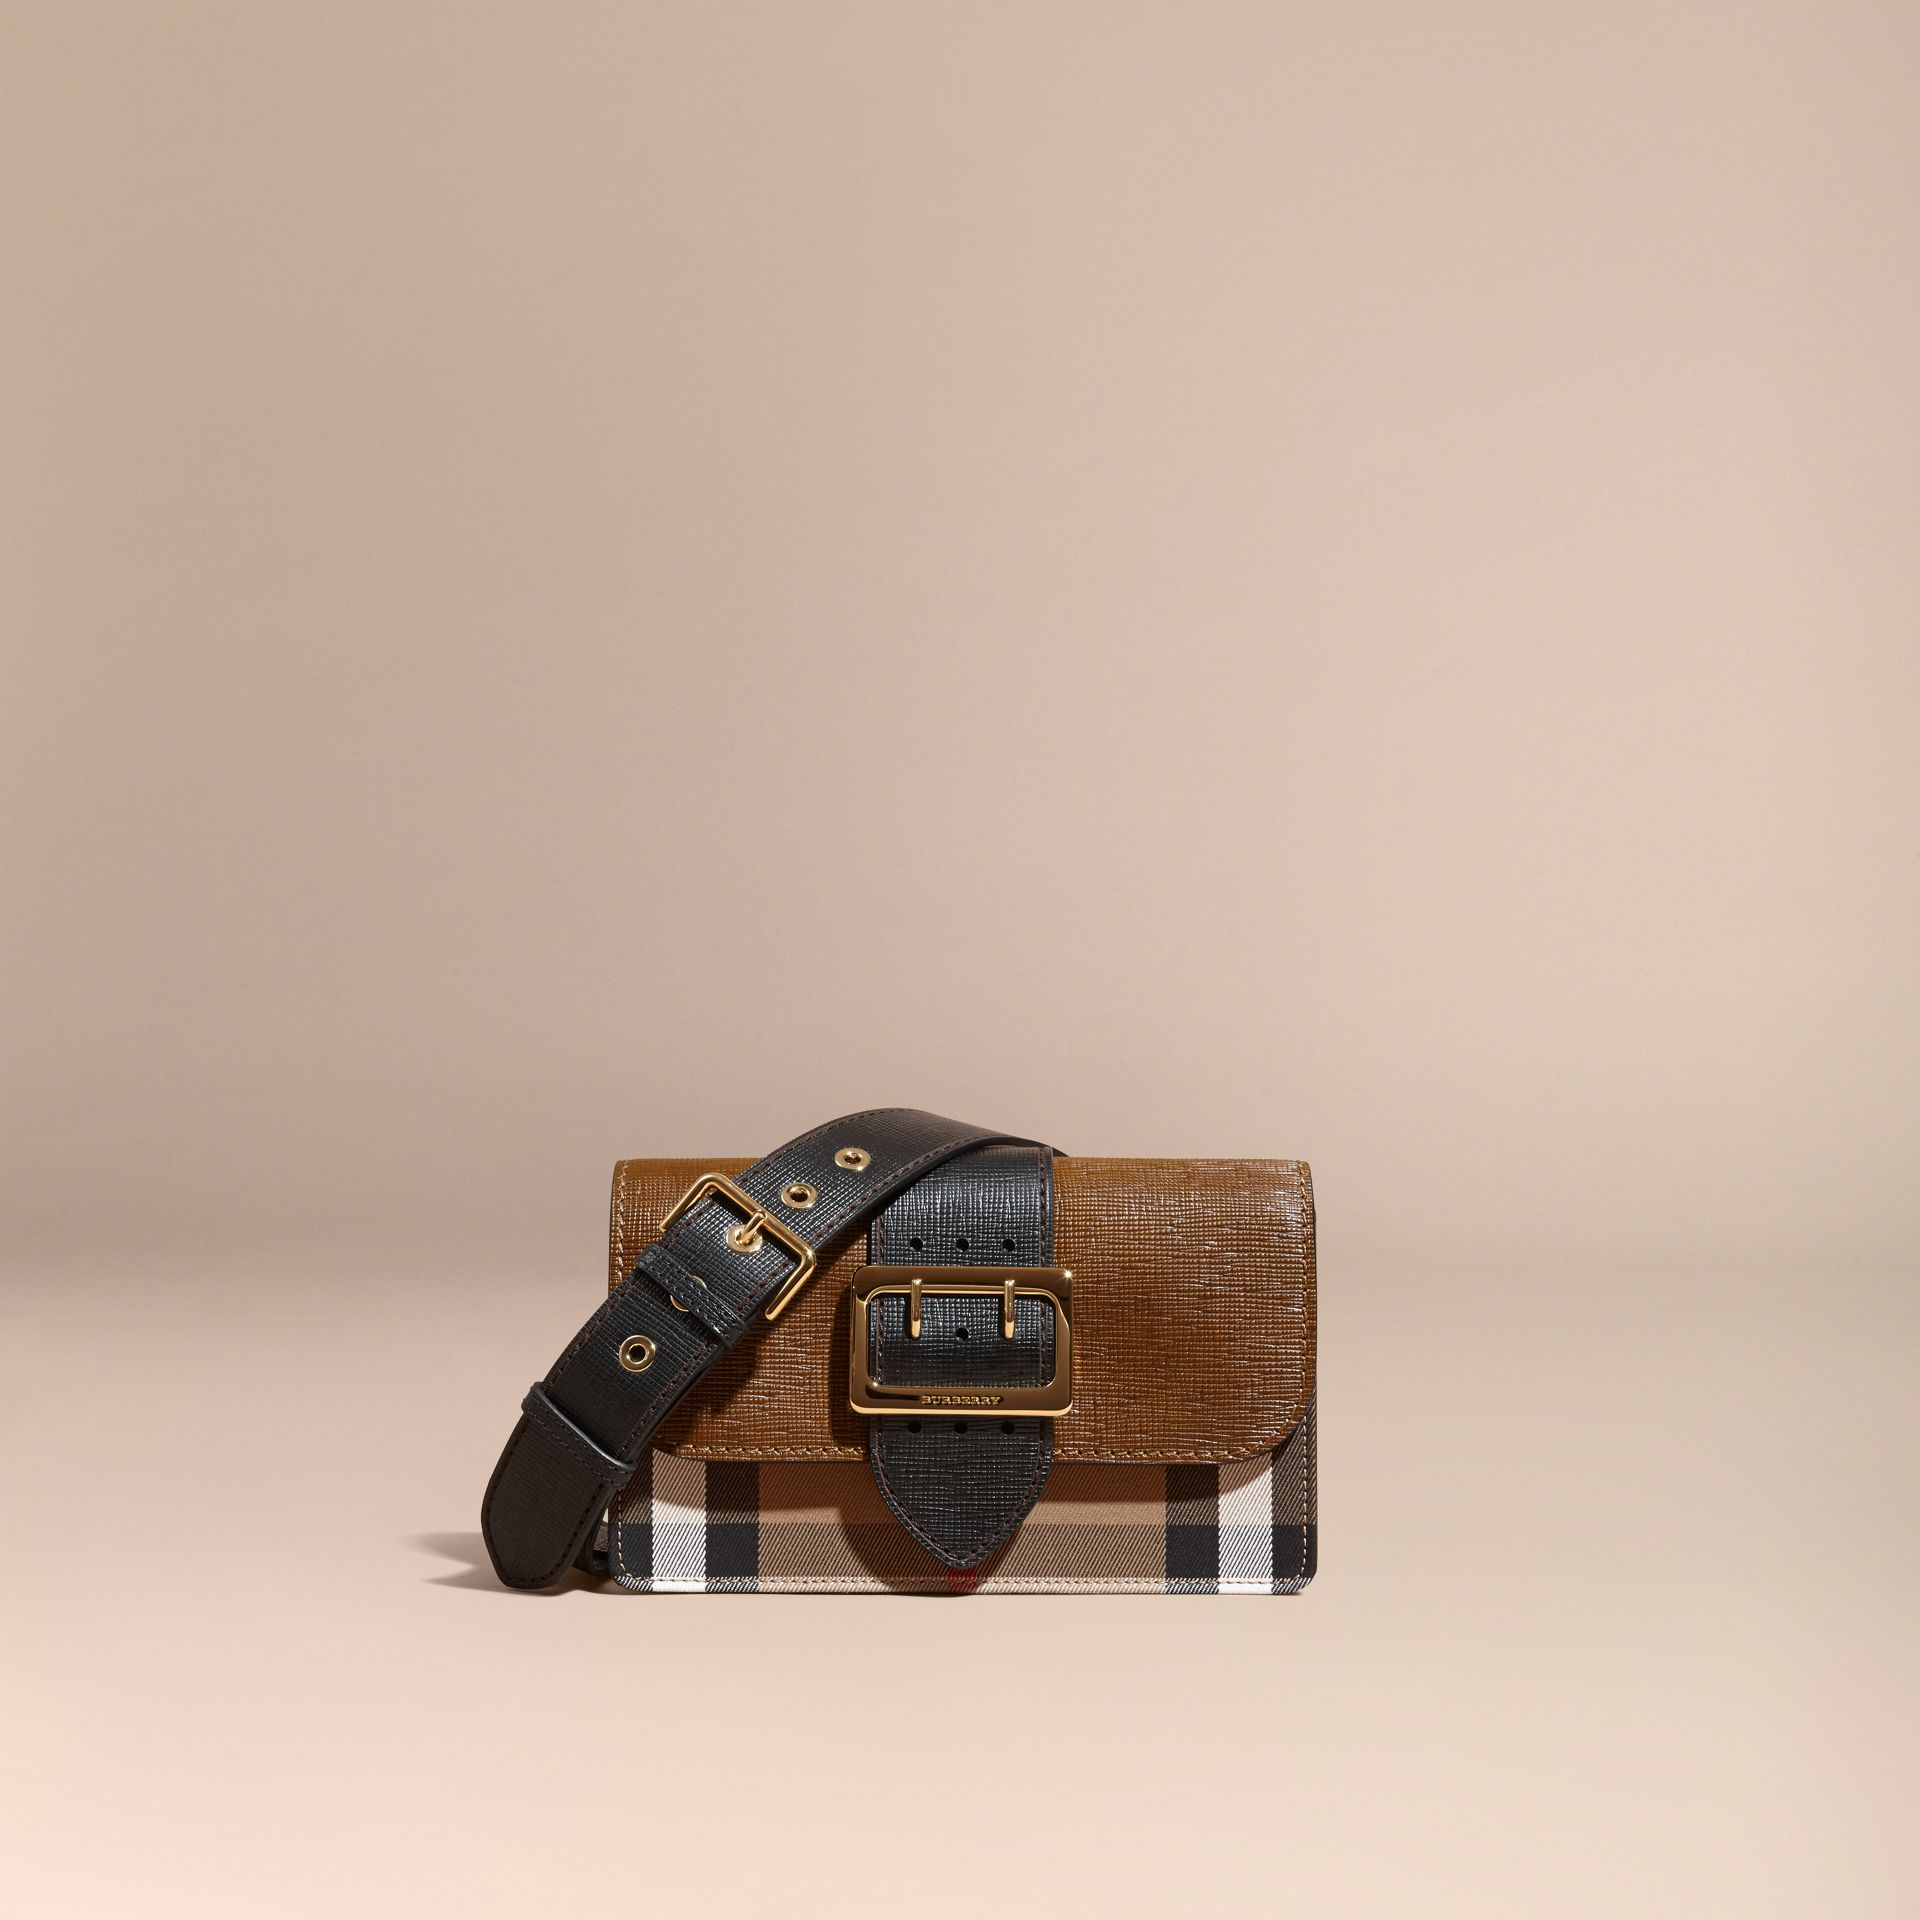 Tan/black The Medium Buckle Bag in House Check and Textured Leather Tan/black - gallery image 9